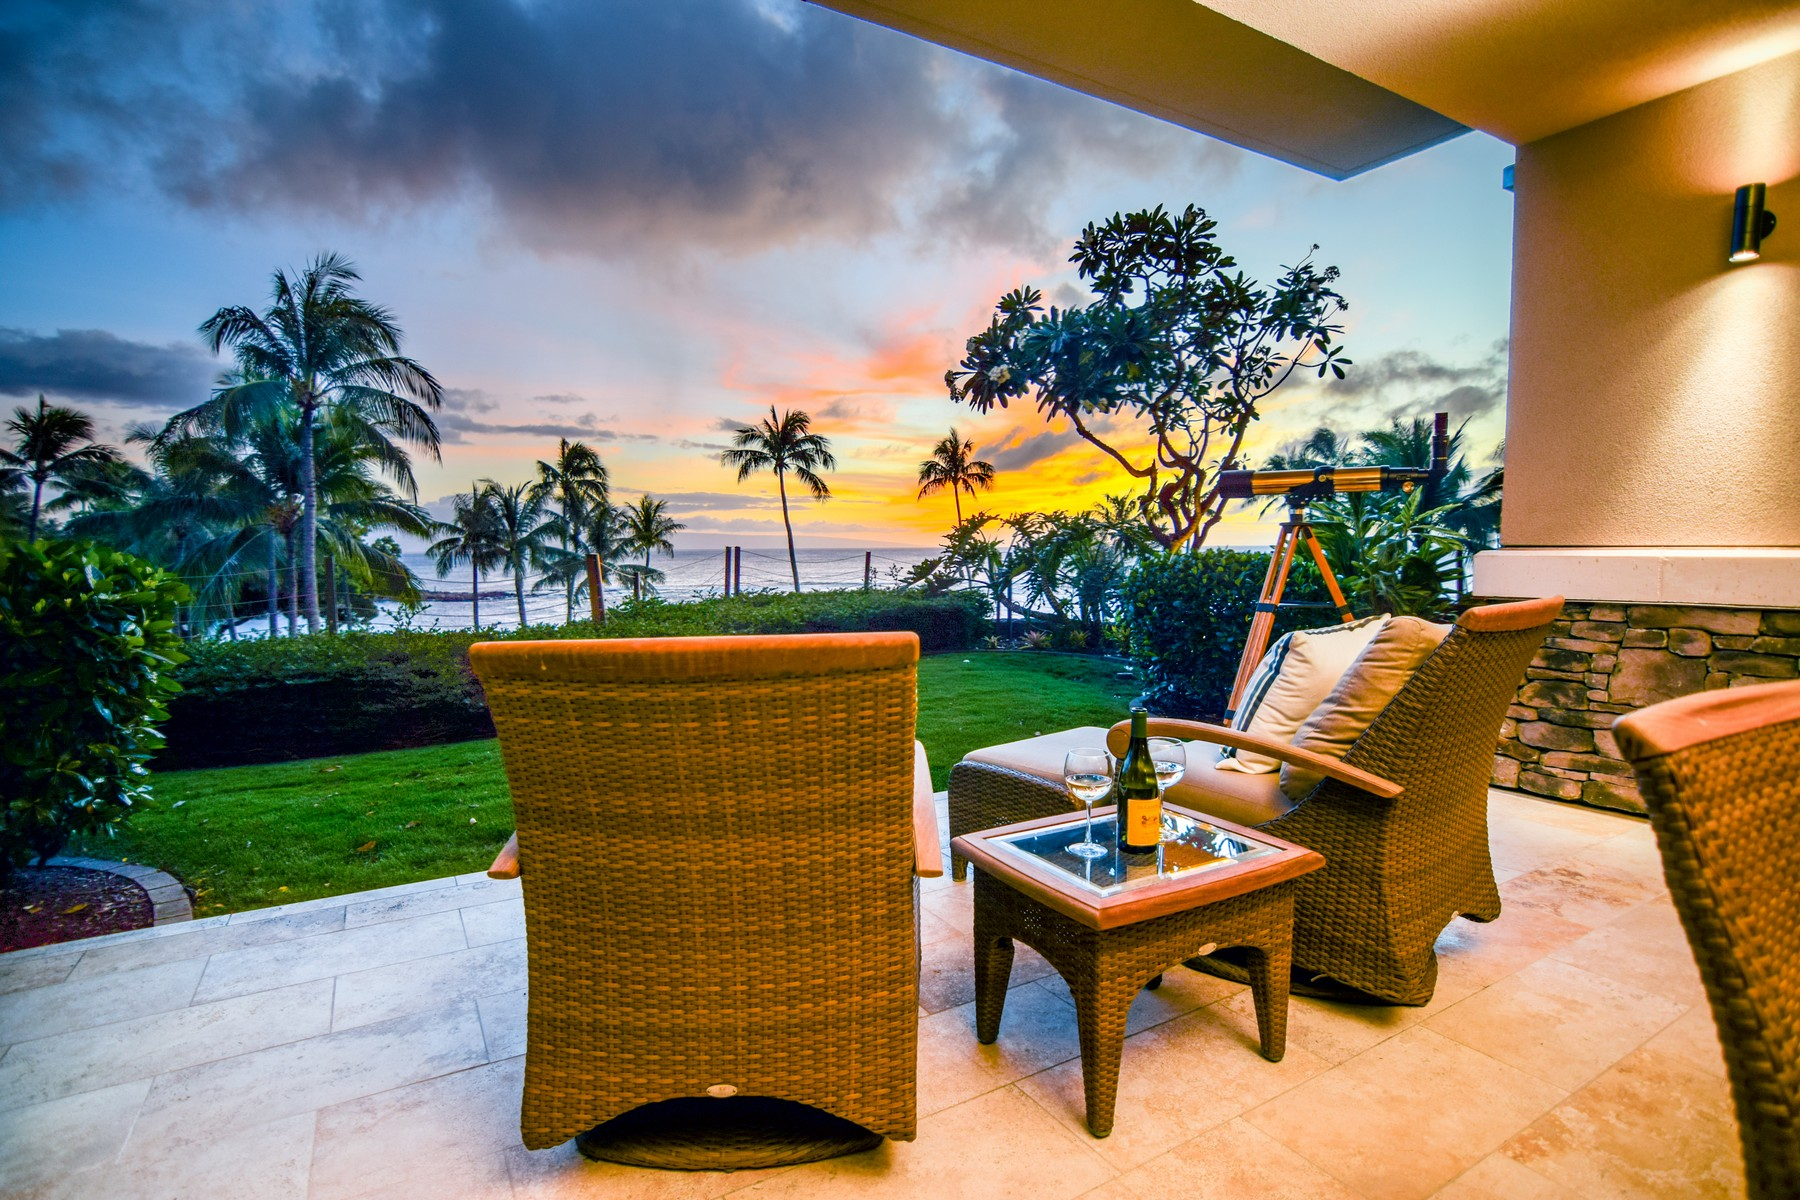 Condominium for Sale at Montage Residences Kapalua Bay, Unlike Any Other One Bay Drive, Montage Residences Kapalua Bay 1205 Kapalua, Hawaii, 96761 United States